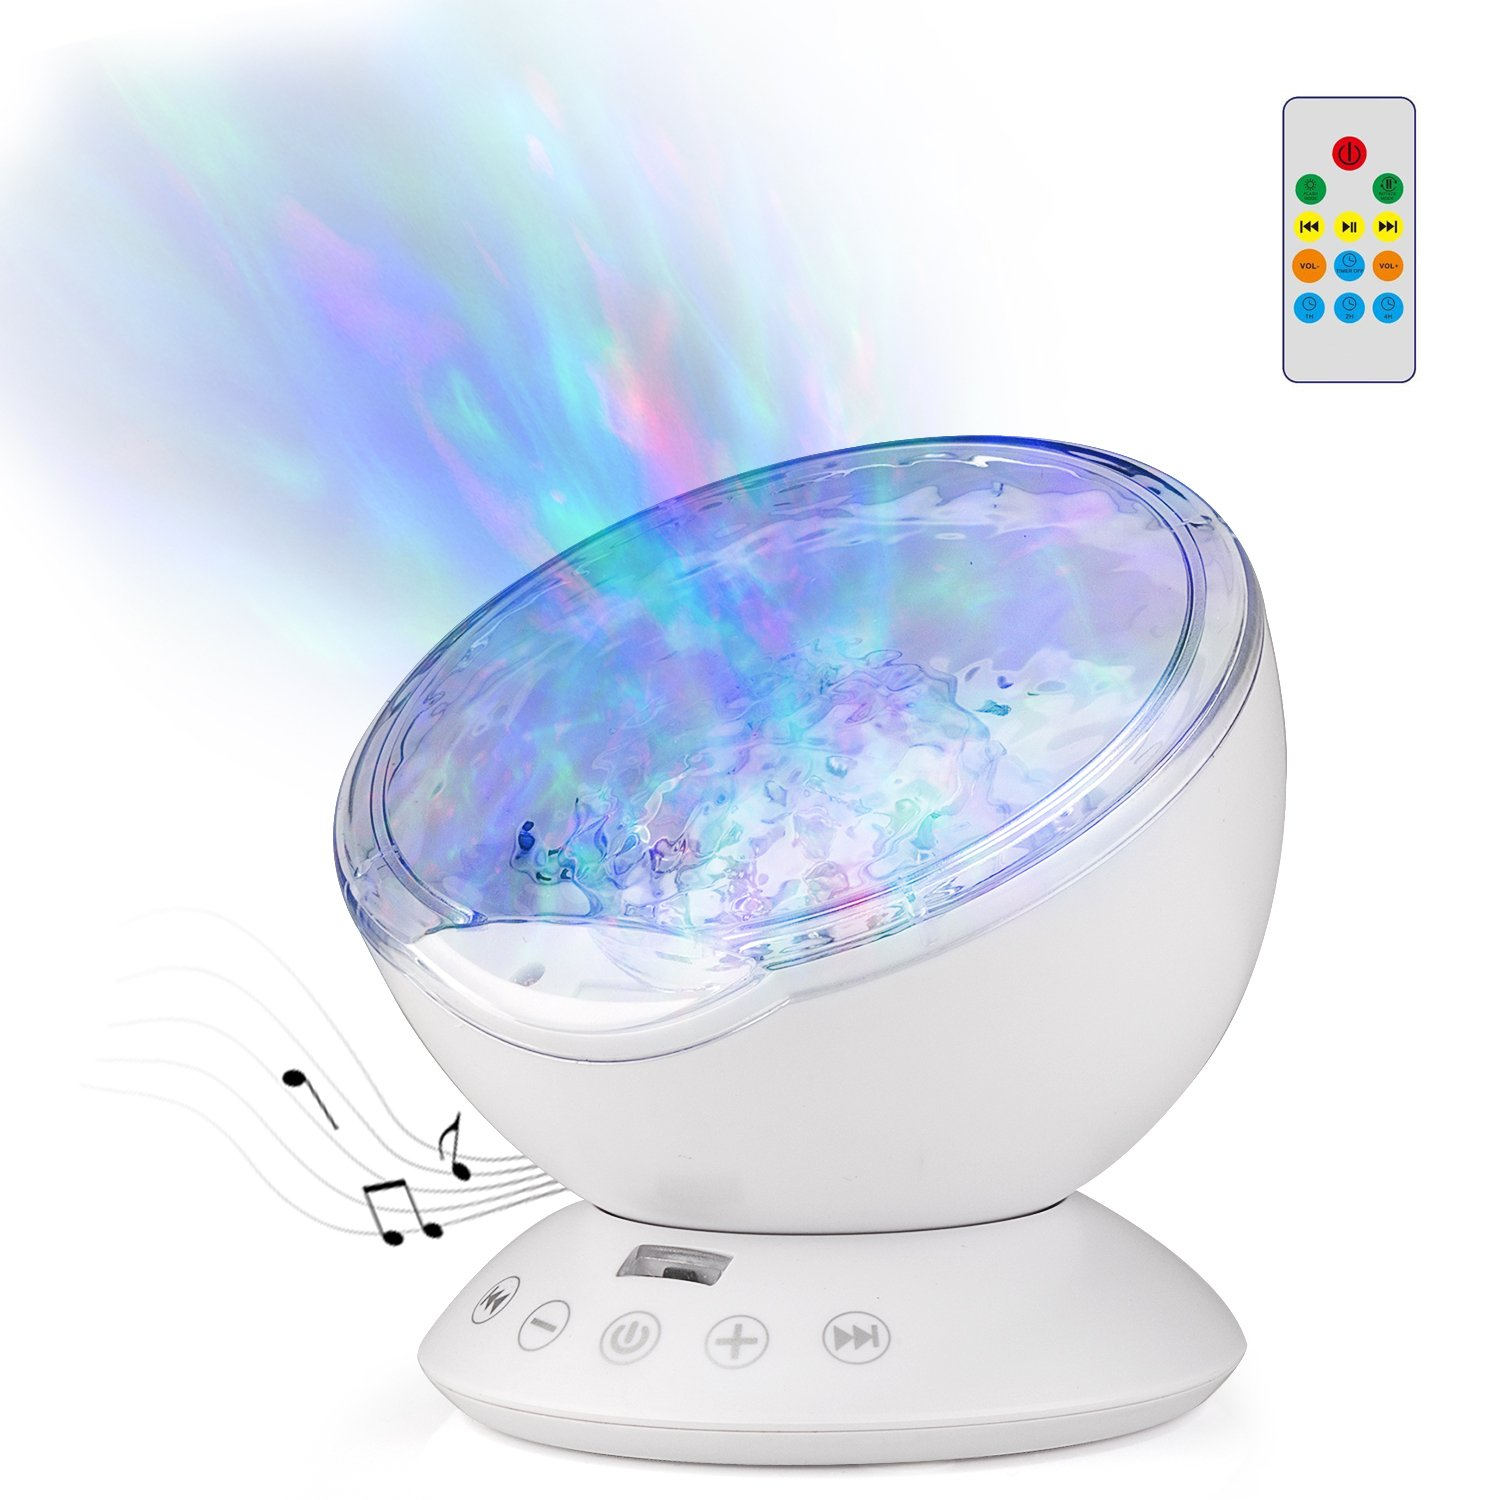 GoLine Ocean Wave Projector Lamp with Built-in Music Player, Remote Control 4 Sounds&7 Lights&12 LED Beads Projection Nightlight for Kids Bedroom, 1H/2H/4H Timer, TF Slot, 3.5mm Aux-in.(NL020-BE) GL-NL020-BE